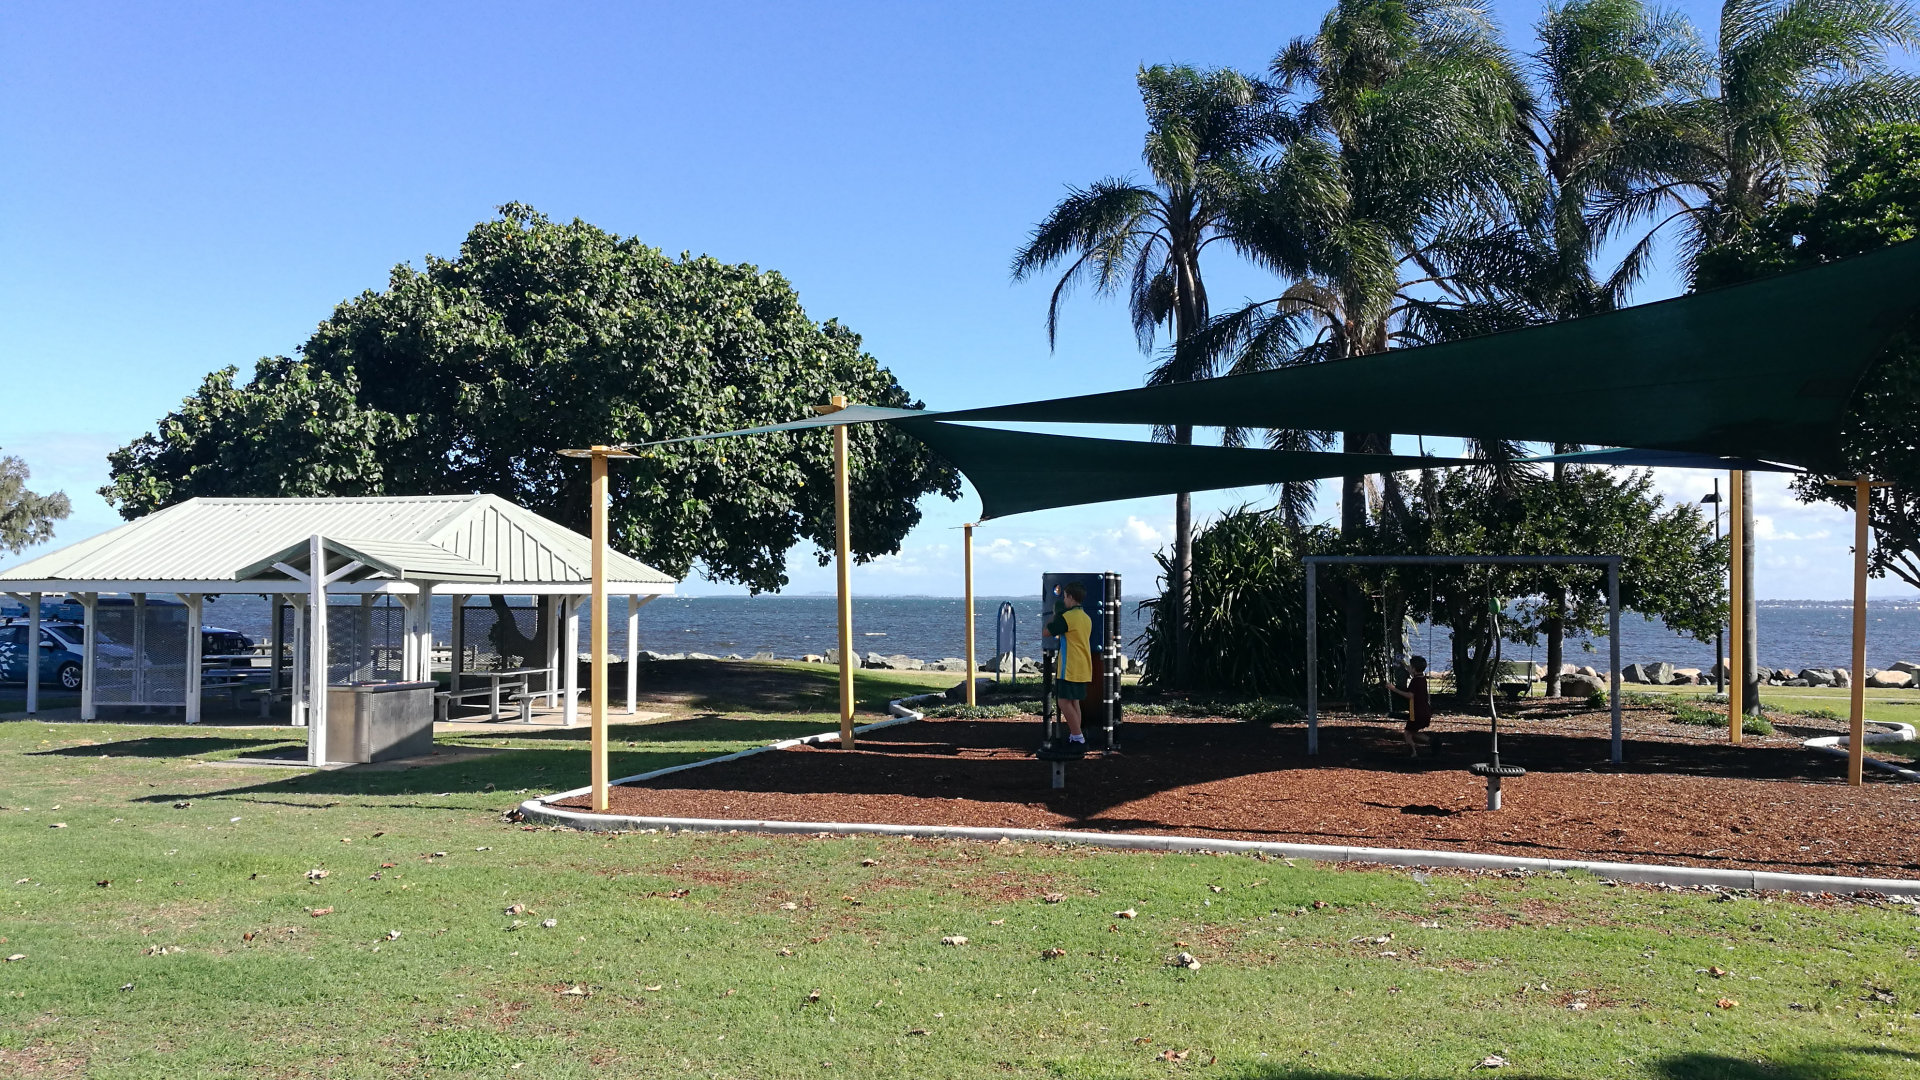 Playground and picnic tables at Bicentennial Park at Woody Point on the Redcliffe Peninsula. It has picnic tables, BBQs, children's playground, and a parkour park